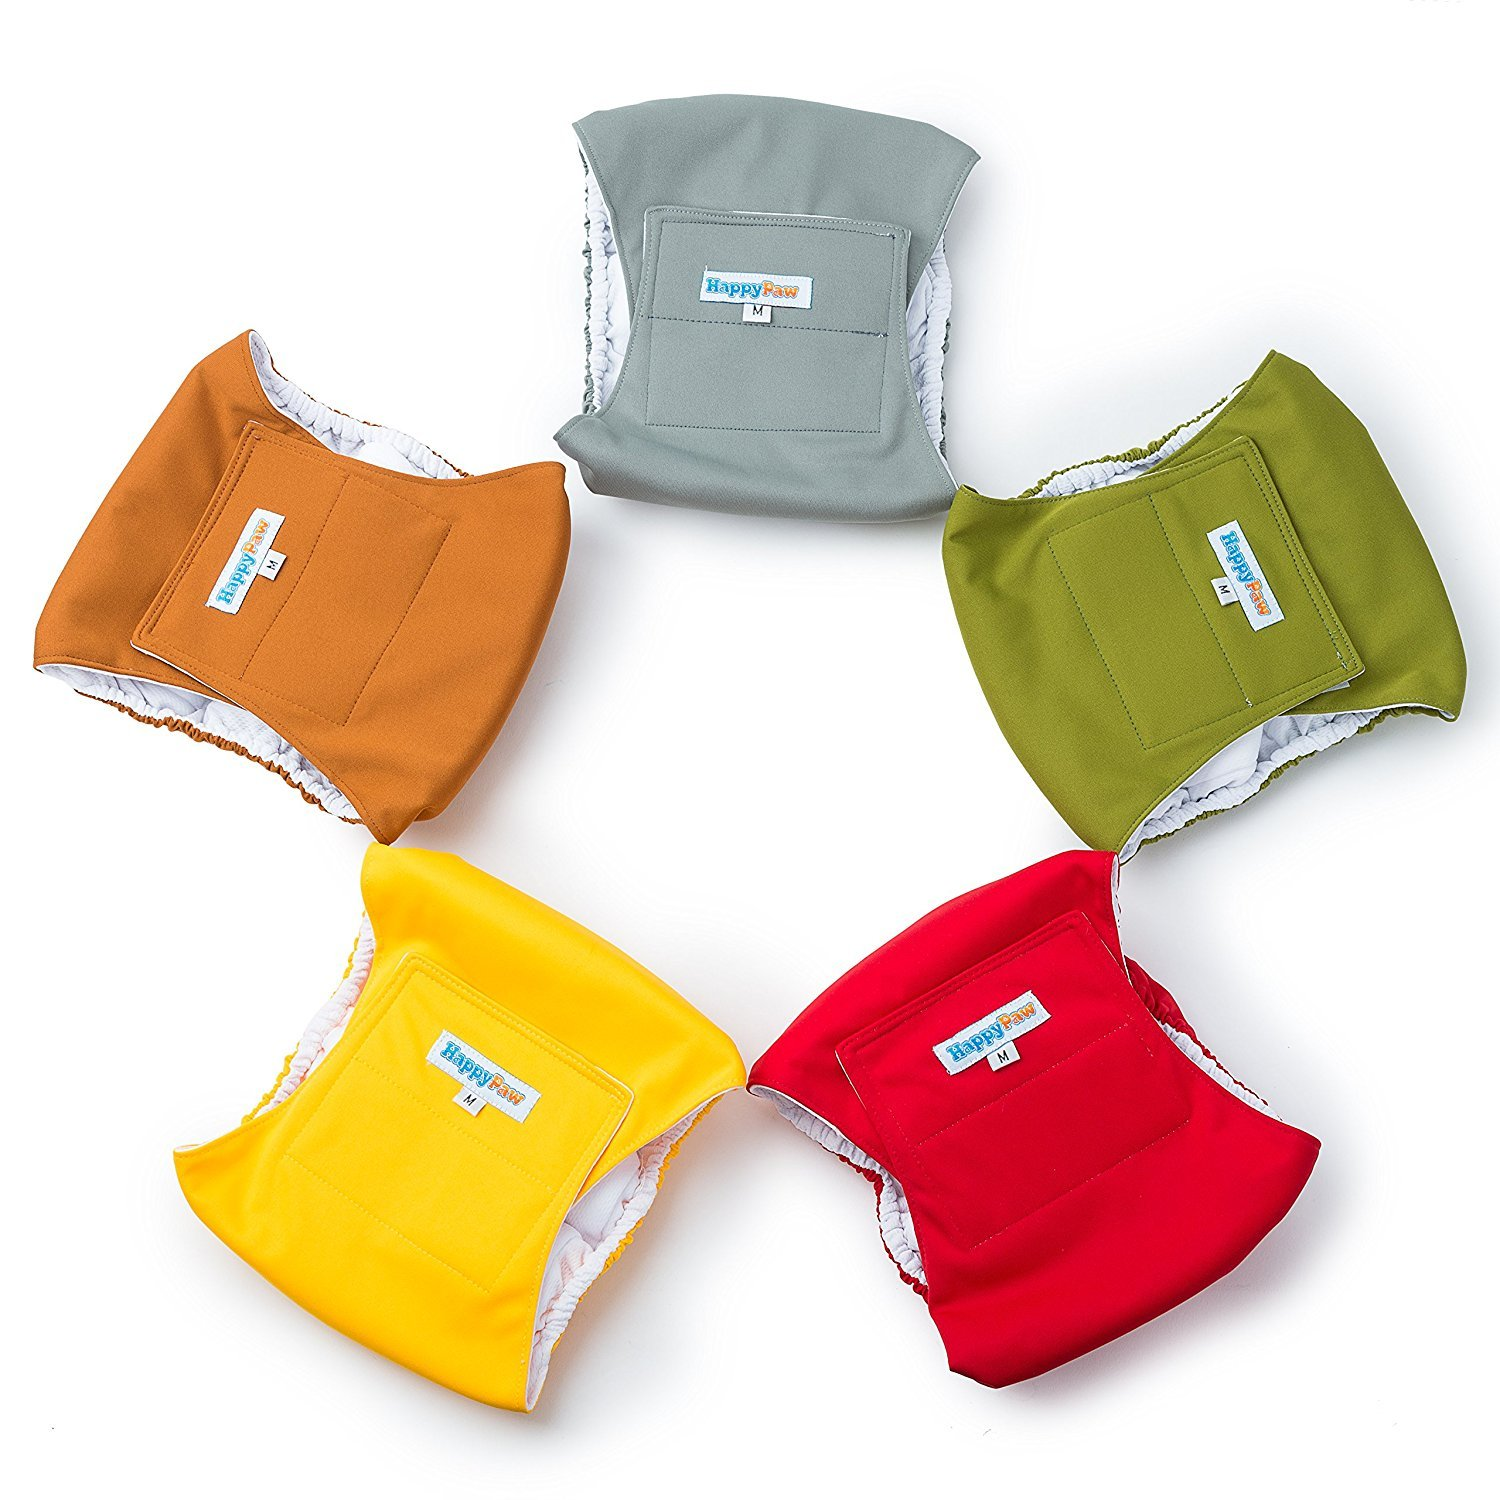 Reusable Washable Dog Belly Bands (5 Pack) - Durable Comfortable Stylish Dog Wraps for Male Dogs - Premium Quality (XL)